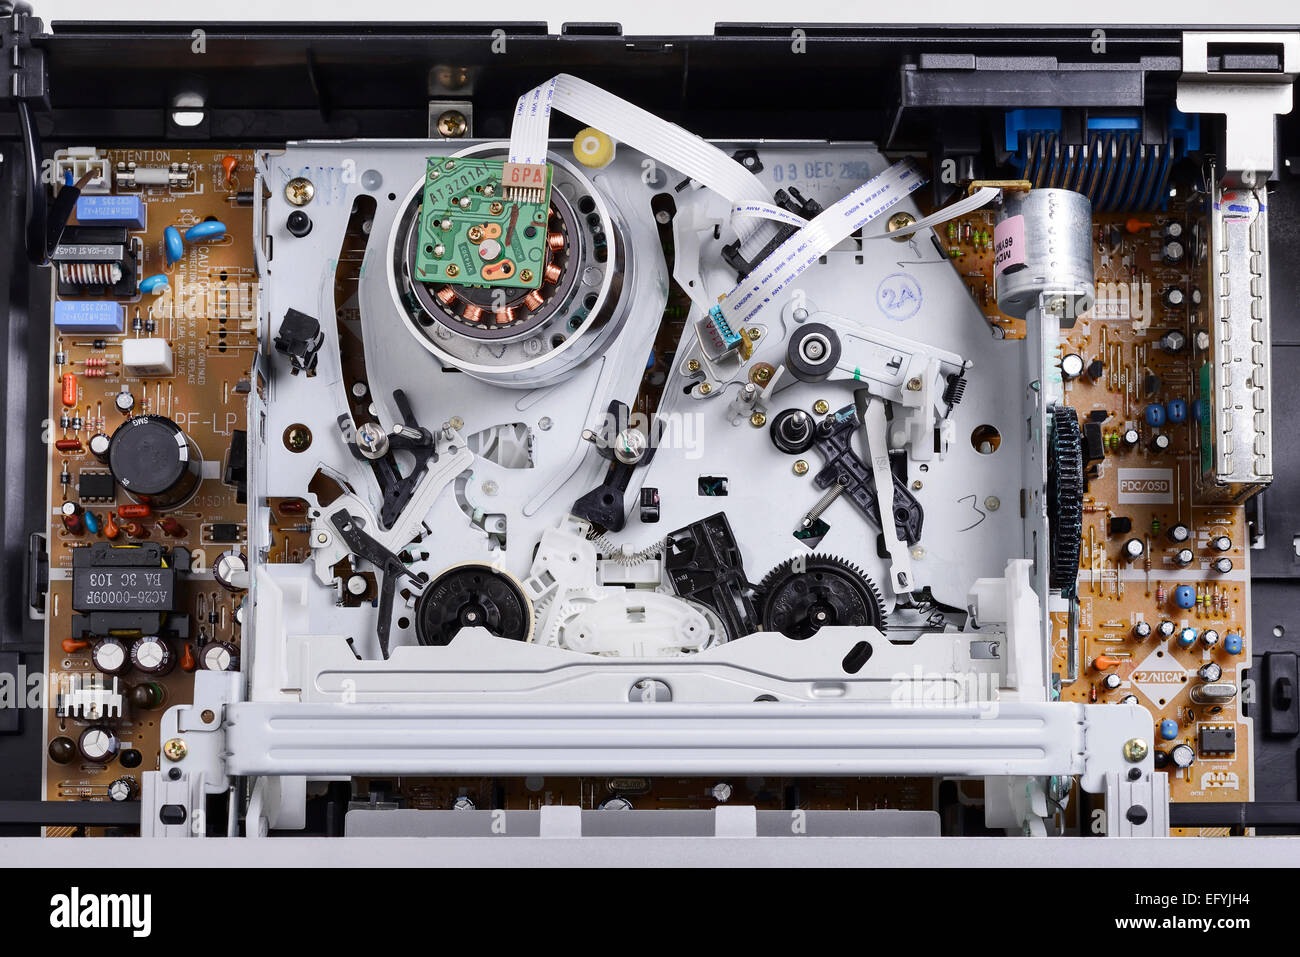 The Inside Of A Vhs Video Cassette Player Efyjh on 1995 Grand Cherokee Laredo Parts